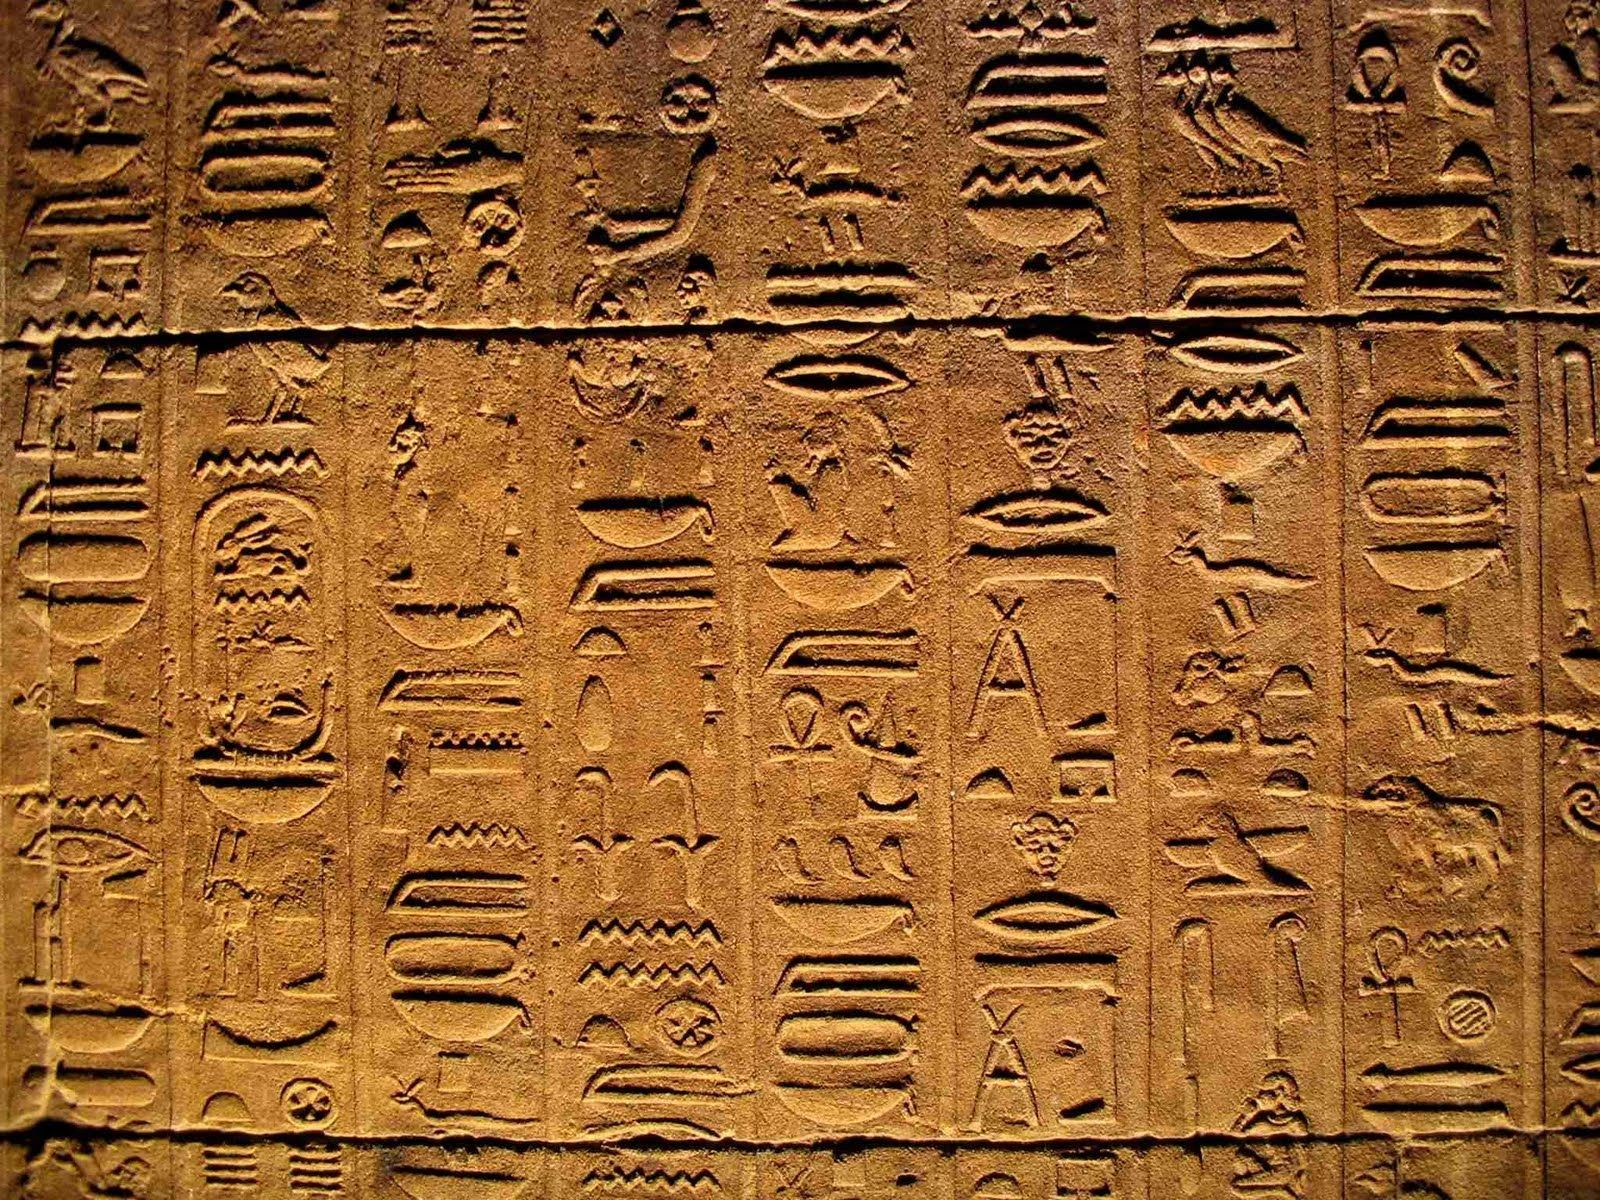 1600x1200 Egyptian Hieroglyphics Wallpapers | Egypt ...